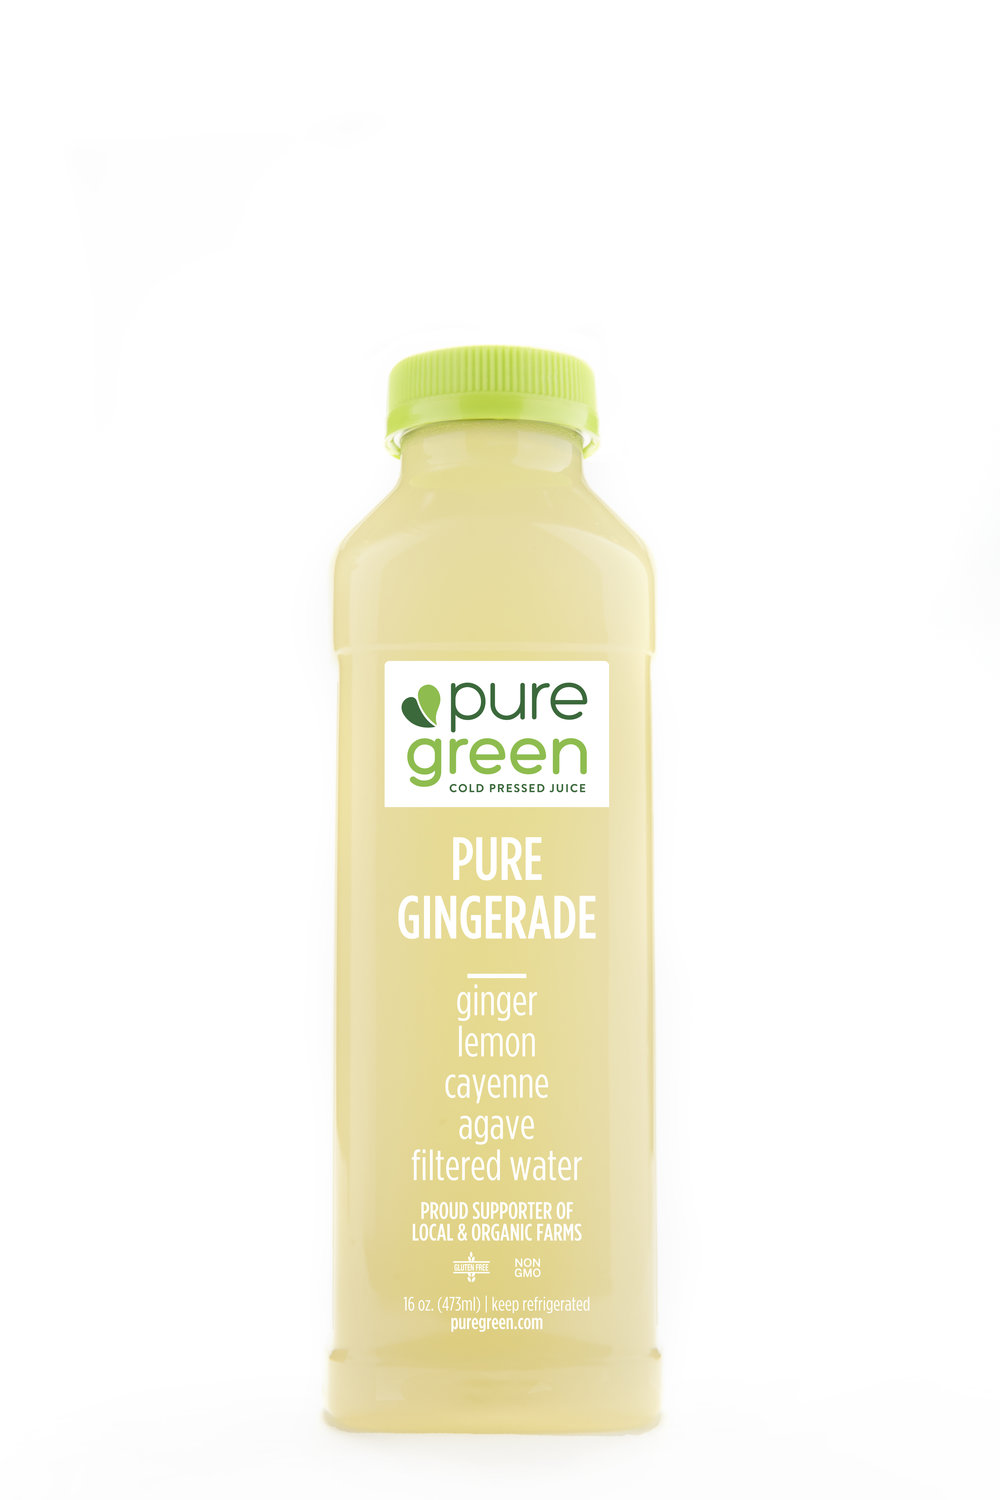 Pure+Gingeraid+Cold+Pressed+Juice.jpg